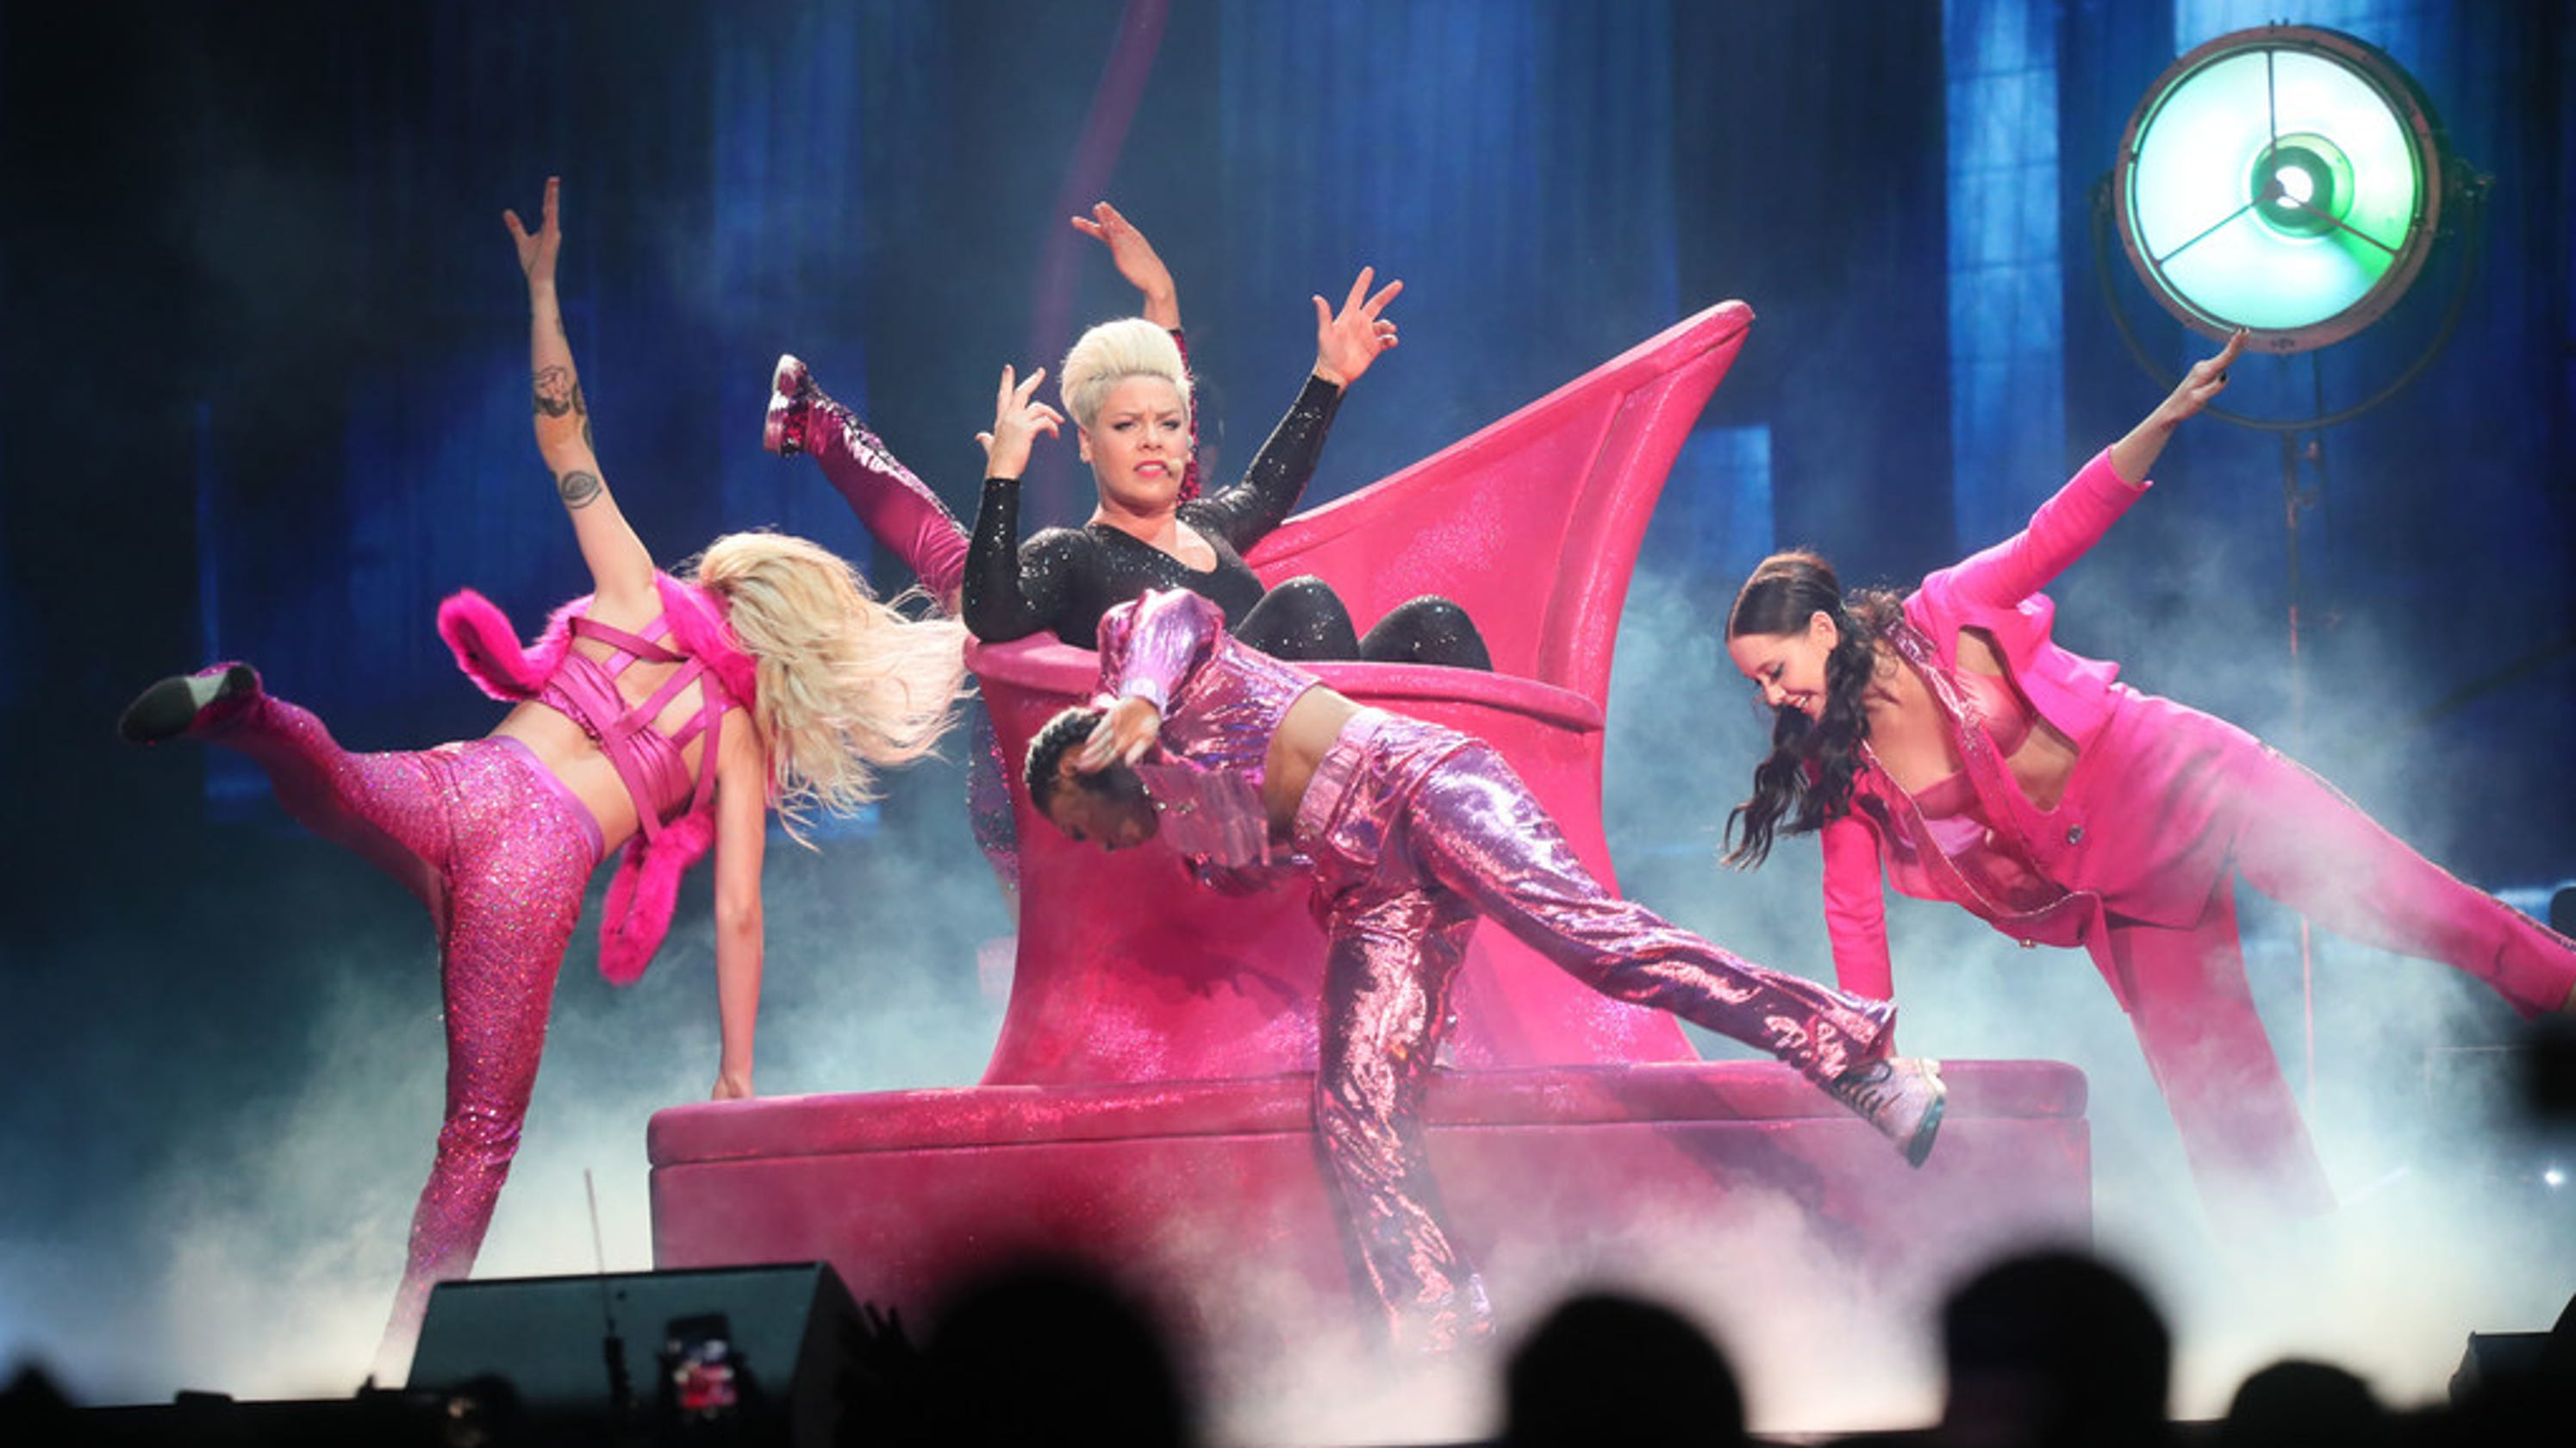 Pink, one of pop's greatest performers, reaches new peak in